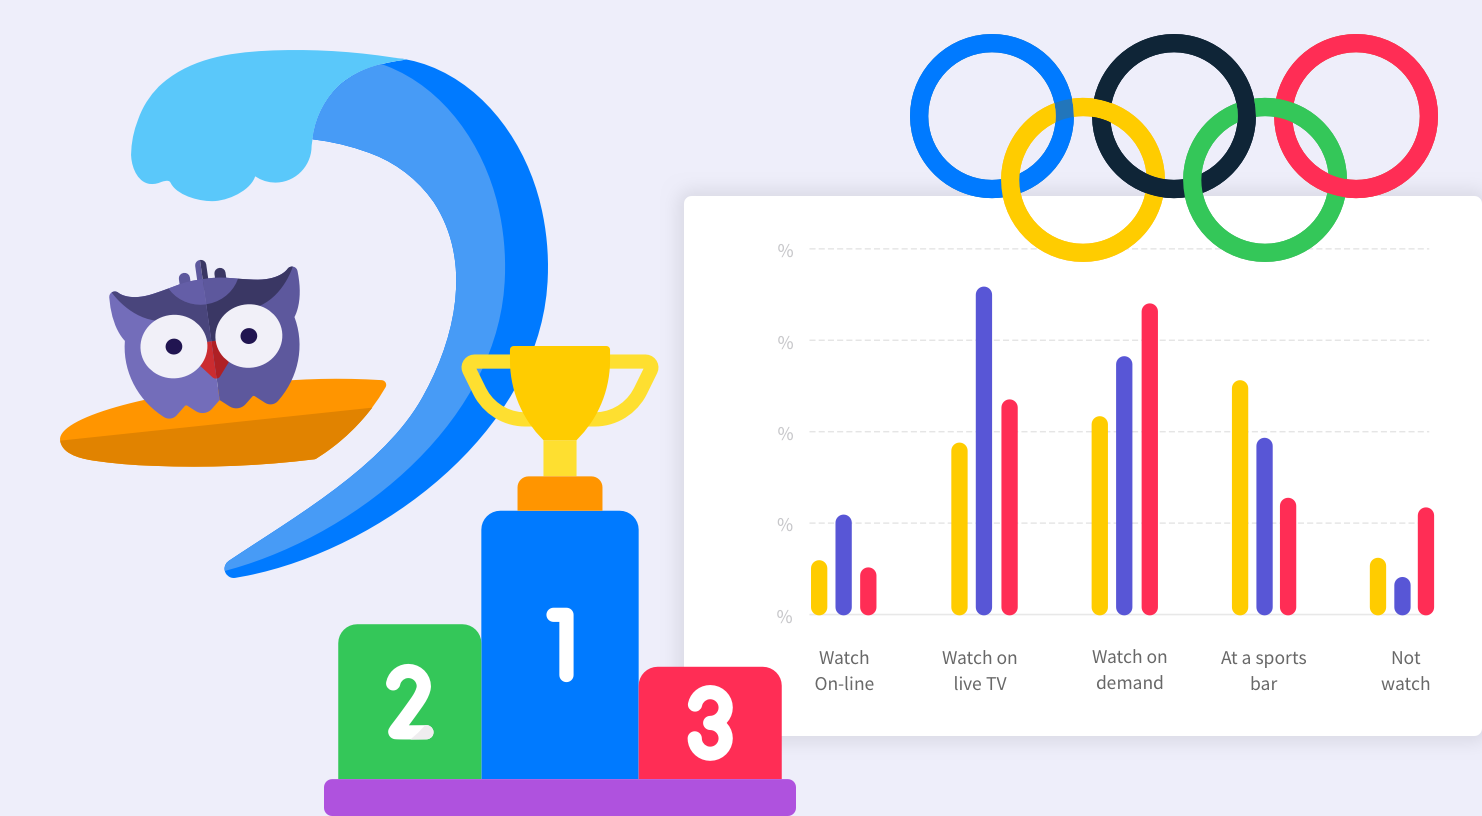 Four Graphic Elements: Siggy the animated purple SightX owl surfs a wave. A podium with a trophy. The Olympic rings. A bar graph with Olympic research data displayed.